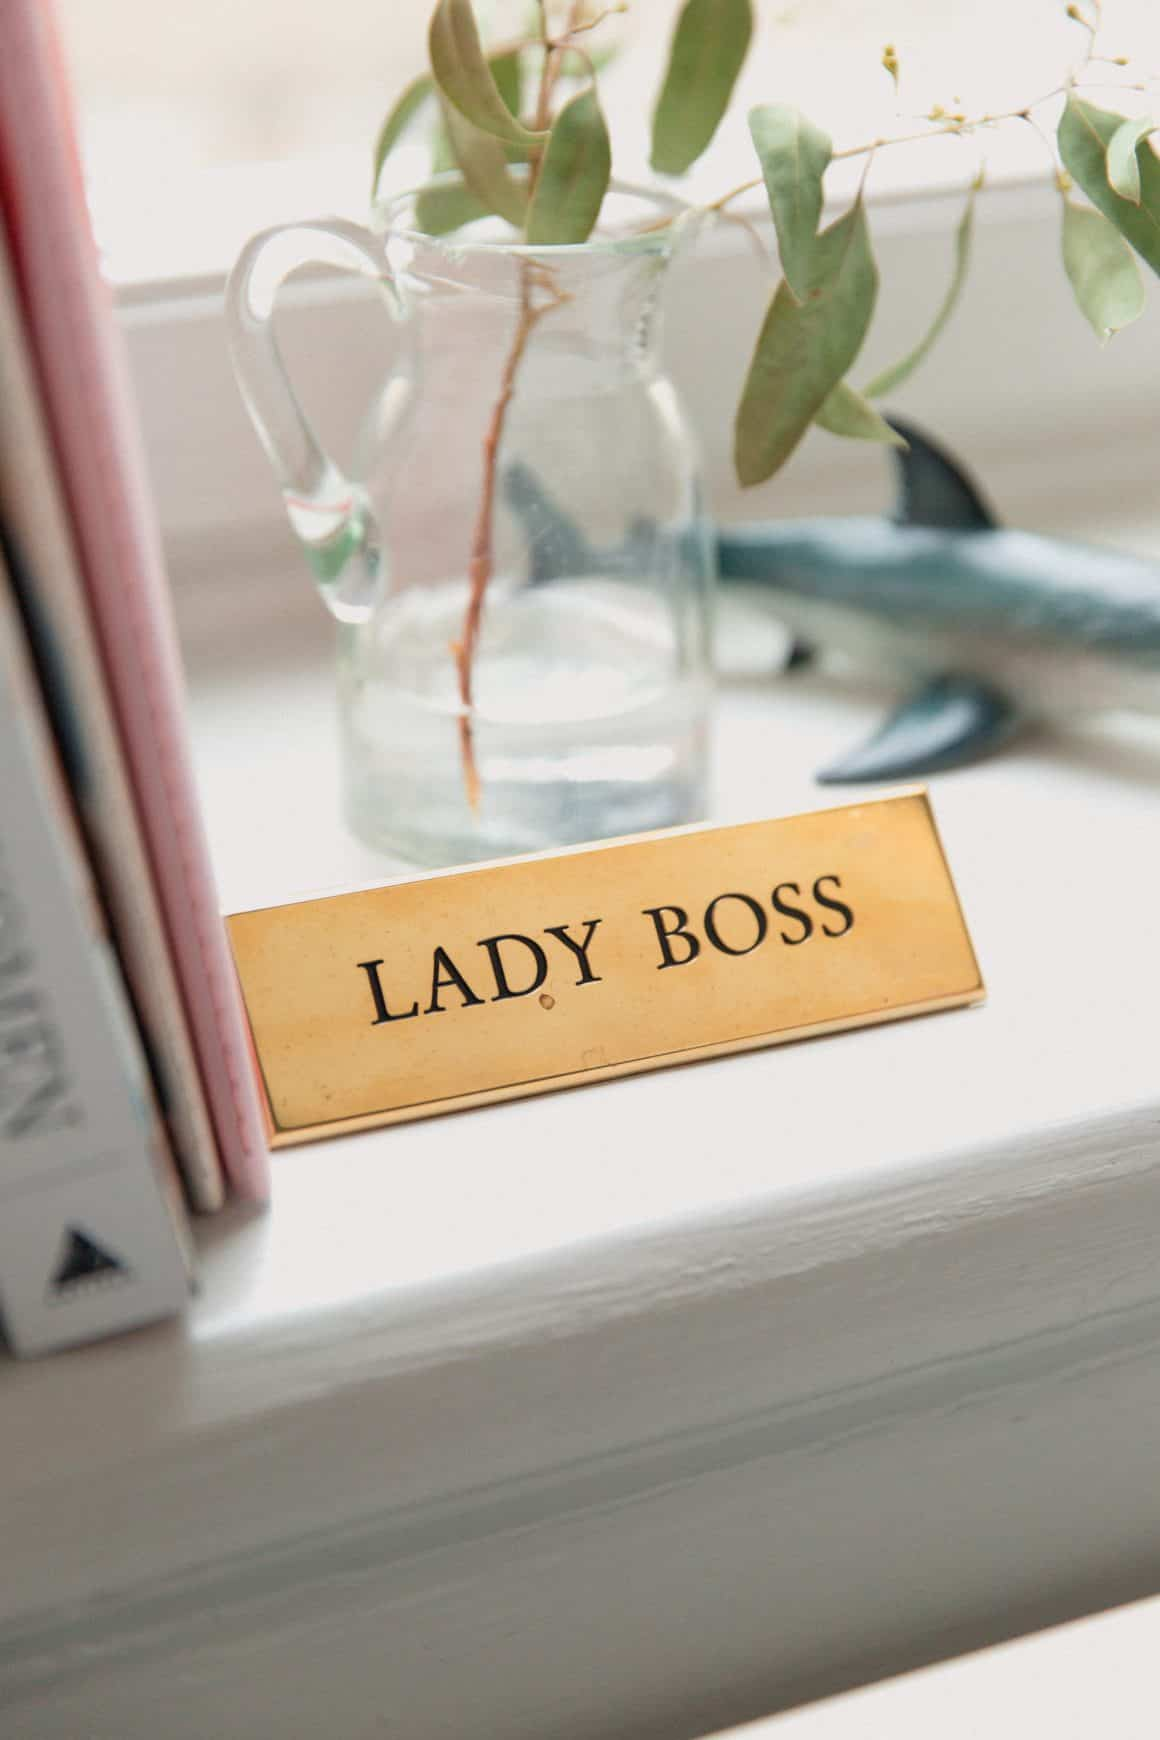 Become a Lady Boss!